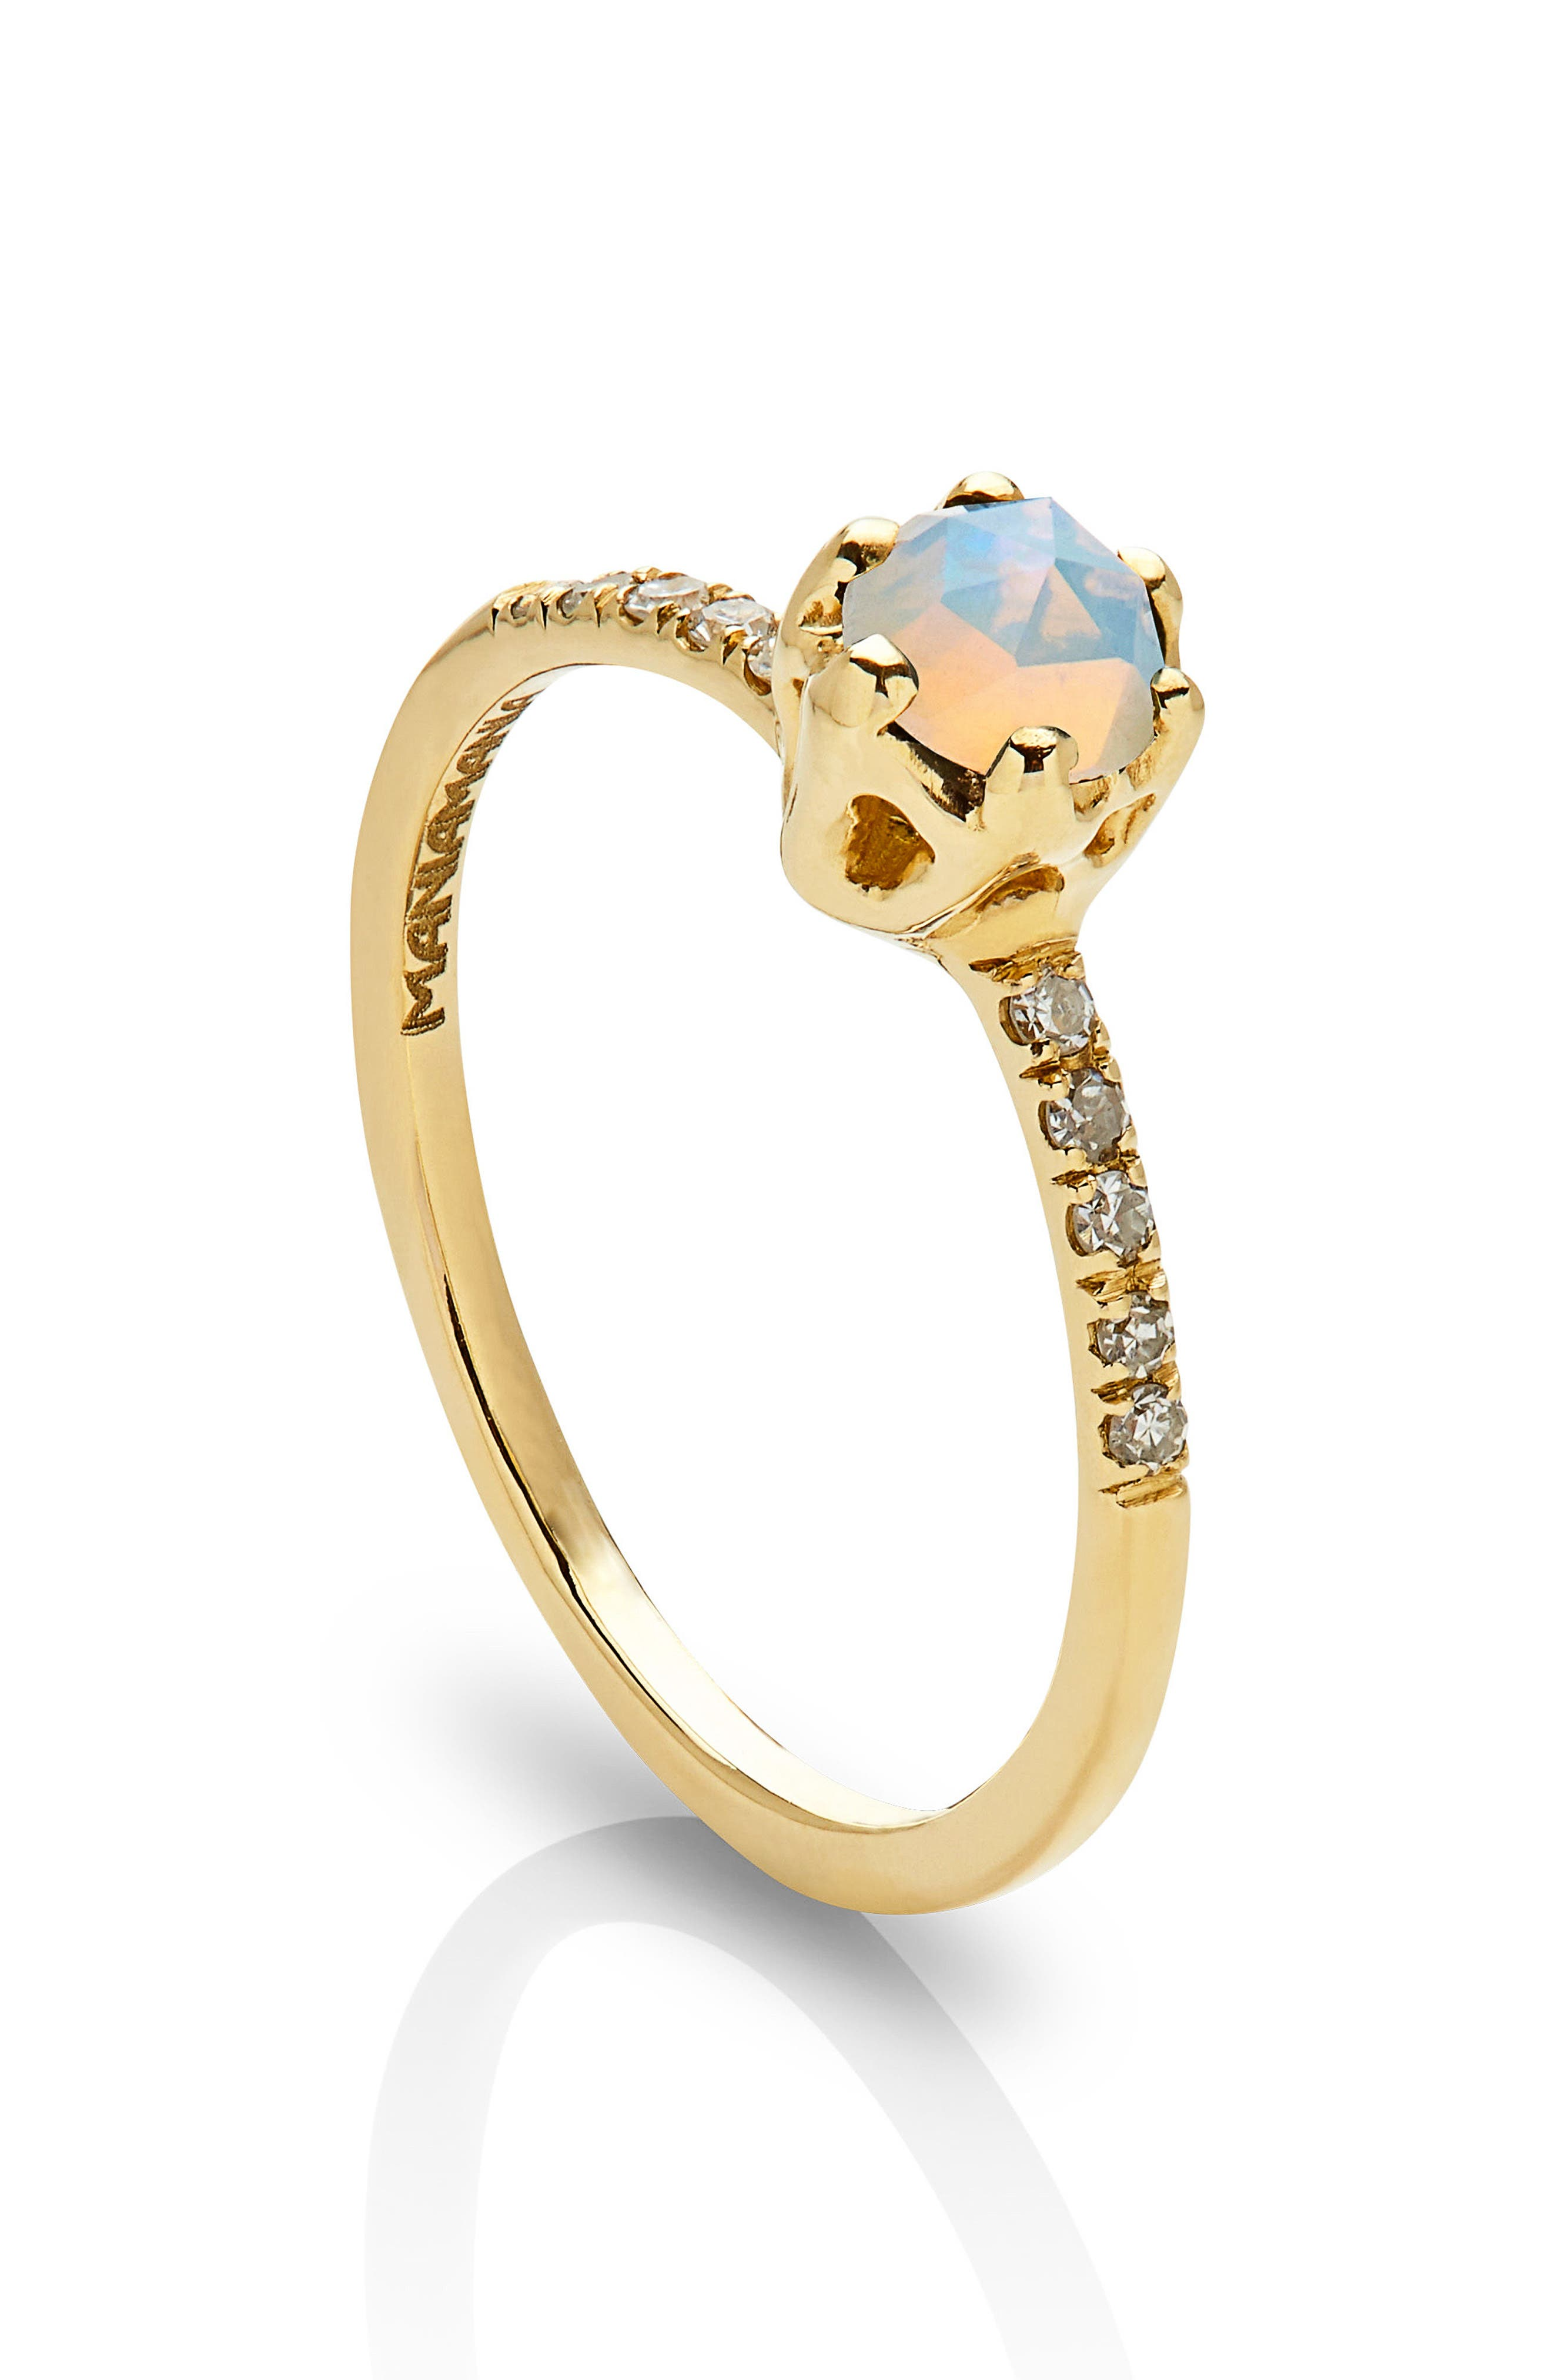 Entity Opal & Diamond Solitaire Ring,                             Alternate thumbnail 2, color,                             YELLOW GOLD/ OPAL